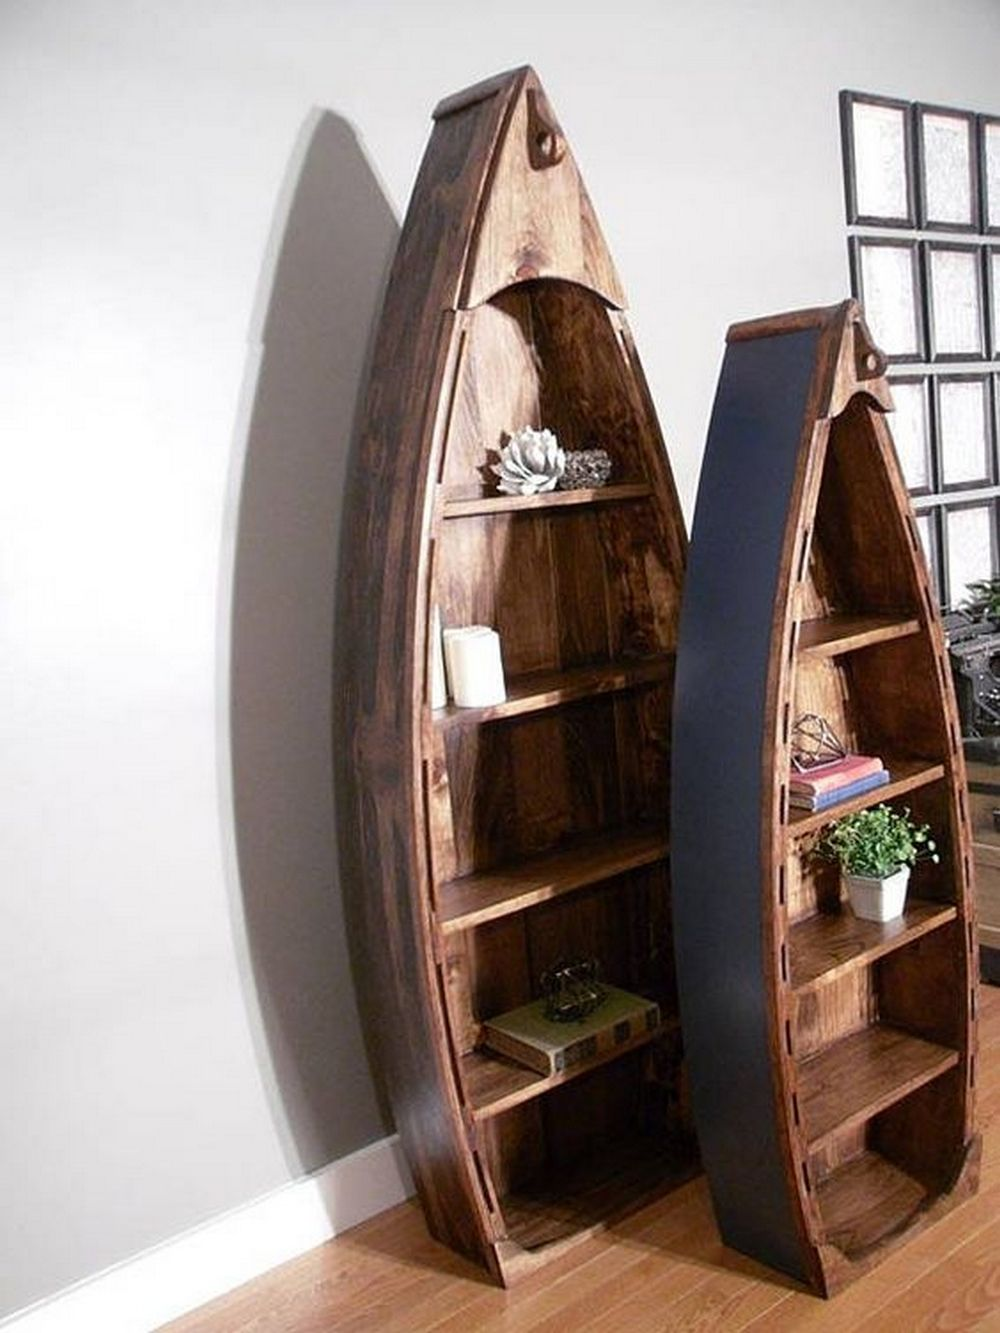 How to Build a Boat Bookshelf #palettendeko